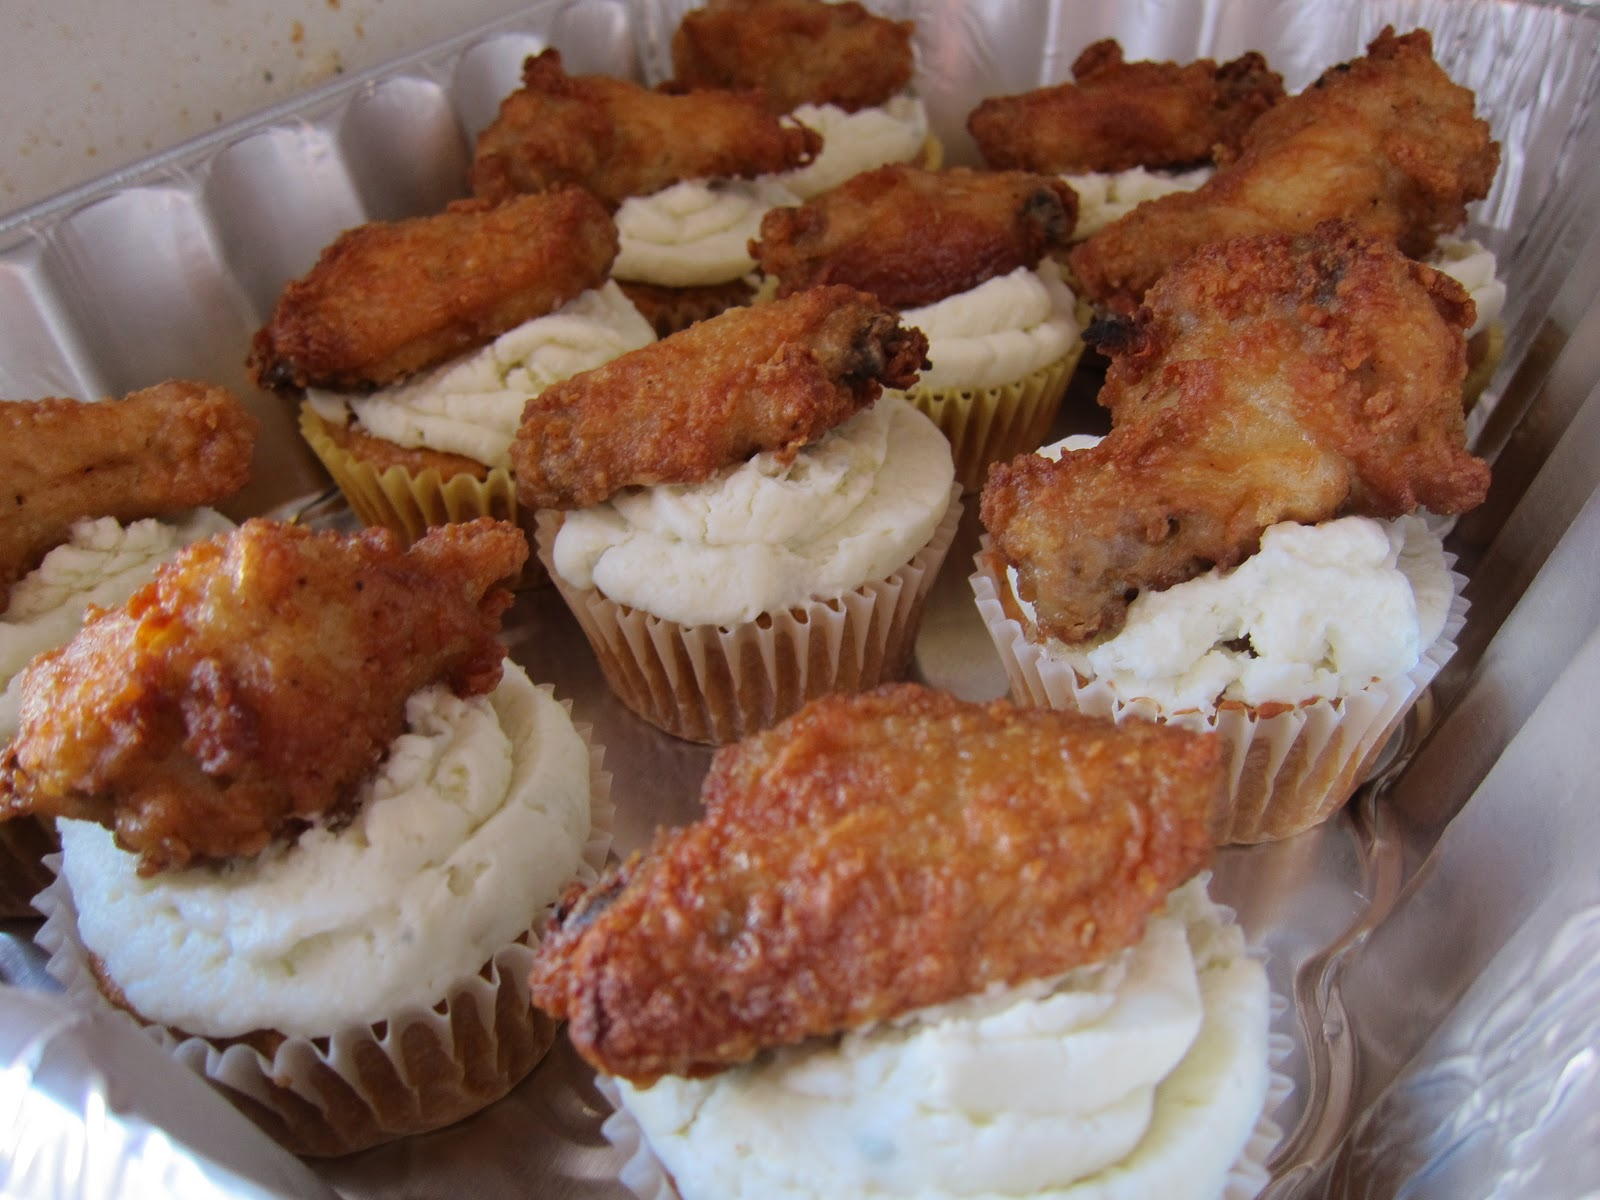 Buffalo Chicken Cupcakes For The Super Bowl Recipes — Dishmaps